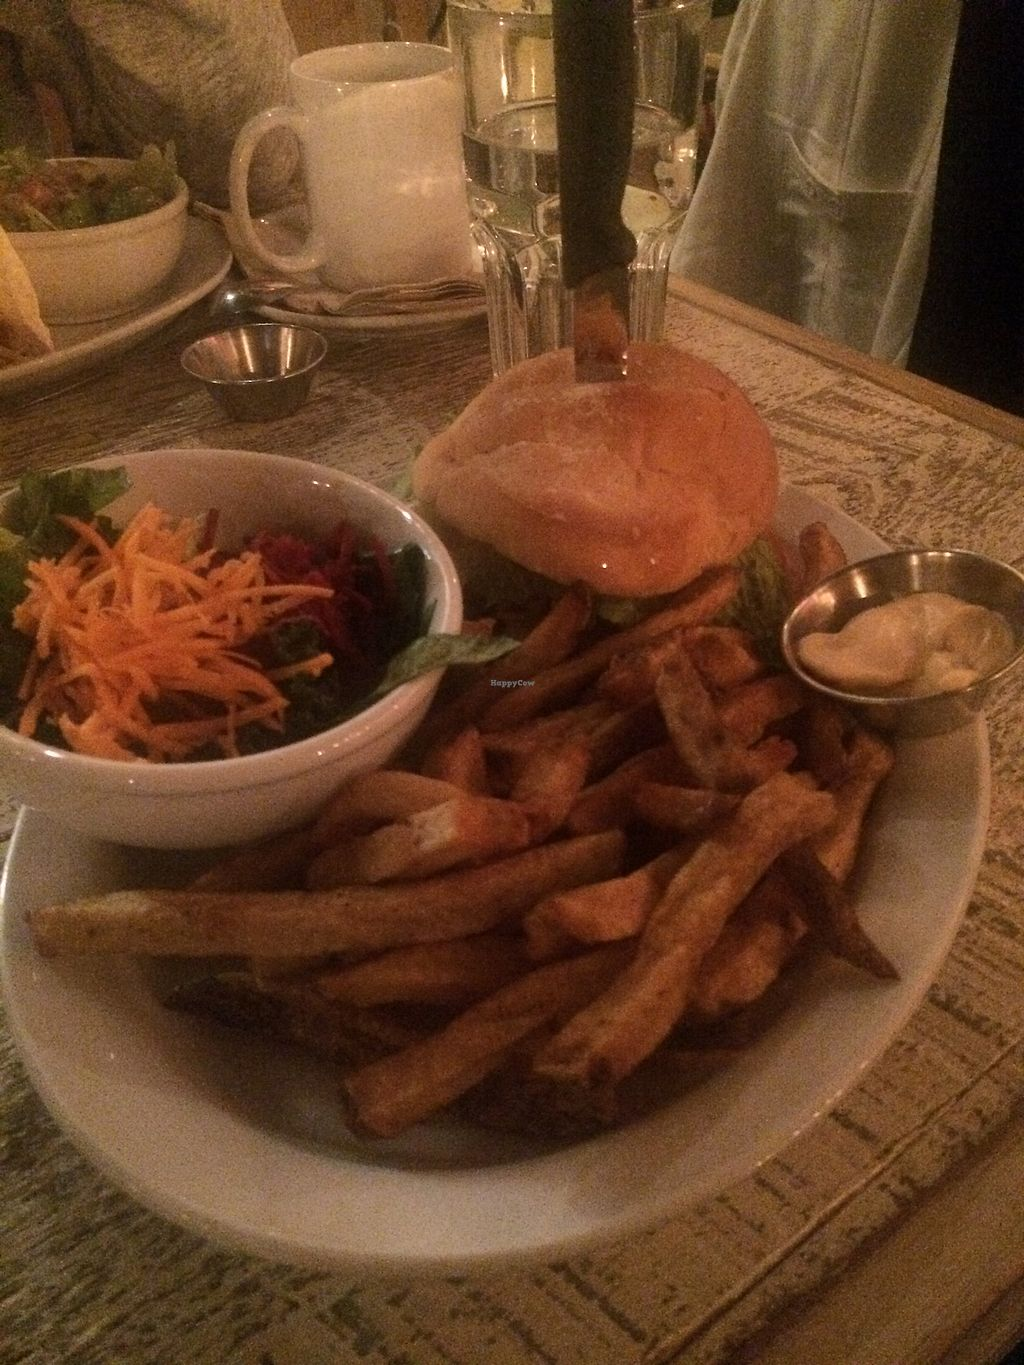 """Photo of MeeT on Main  by <a href=""""/members/profile/Marieanne"""">Marieanne</a> <br/>Bacon burger <br/> January 6, 2018  - <a href='/contact/abuse/image/51030/343460'>Report</a>"""